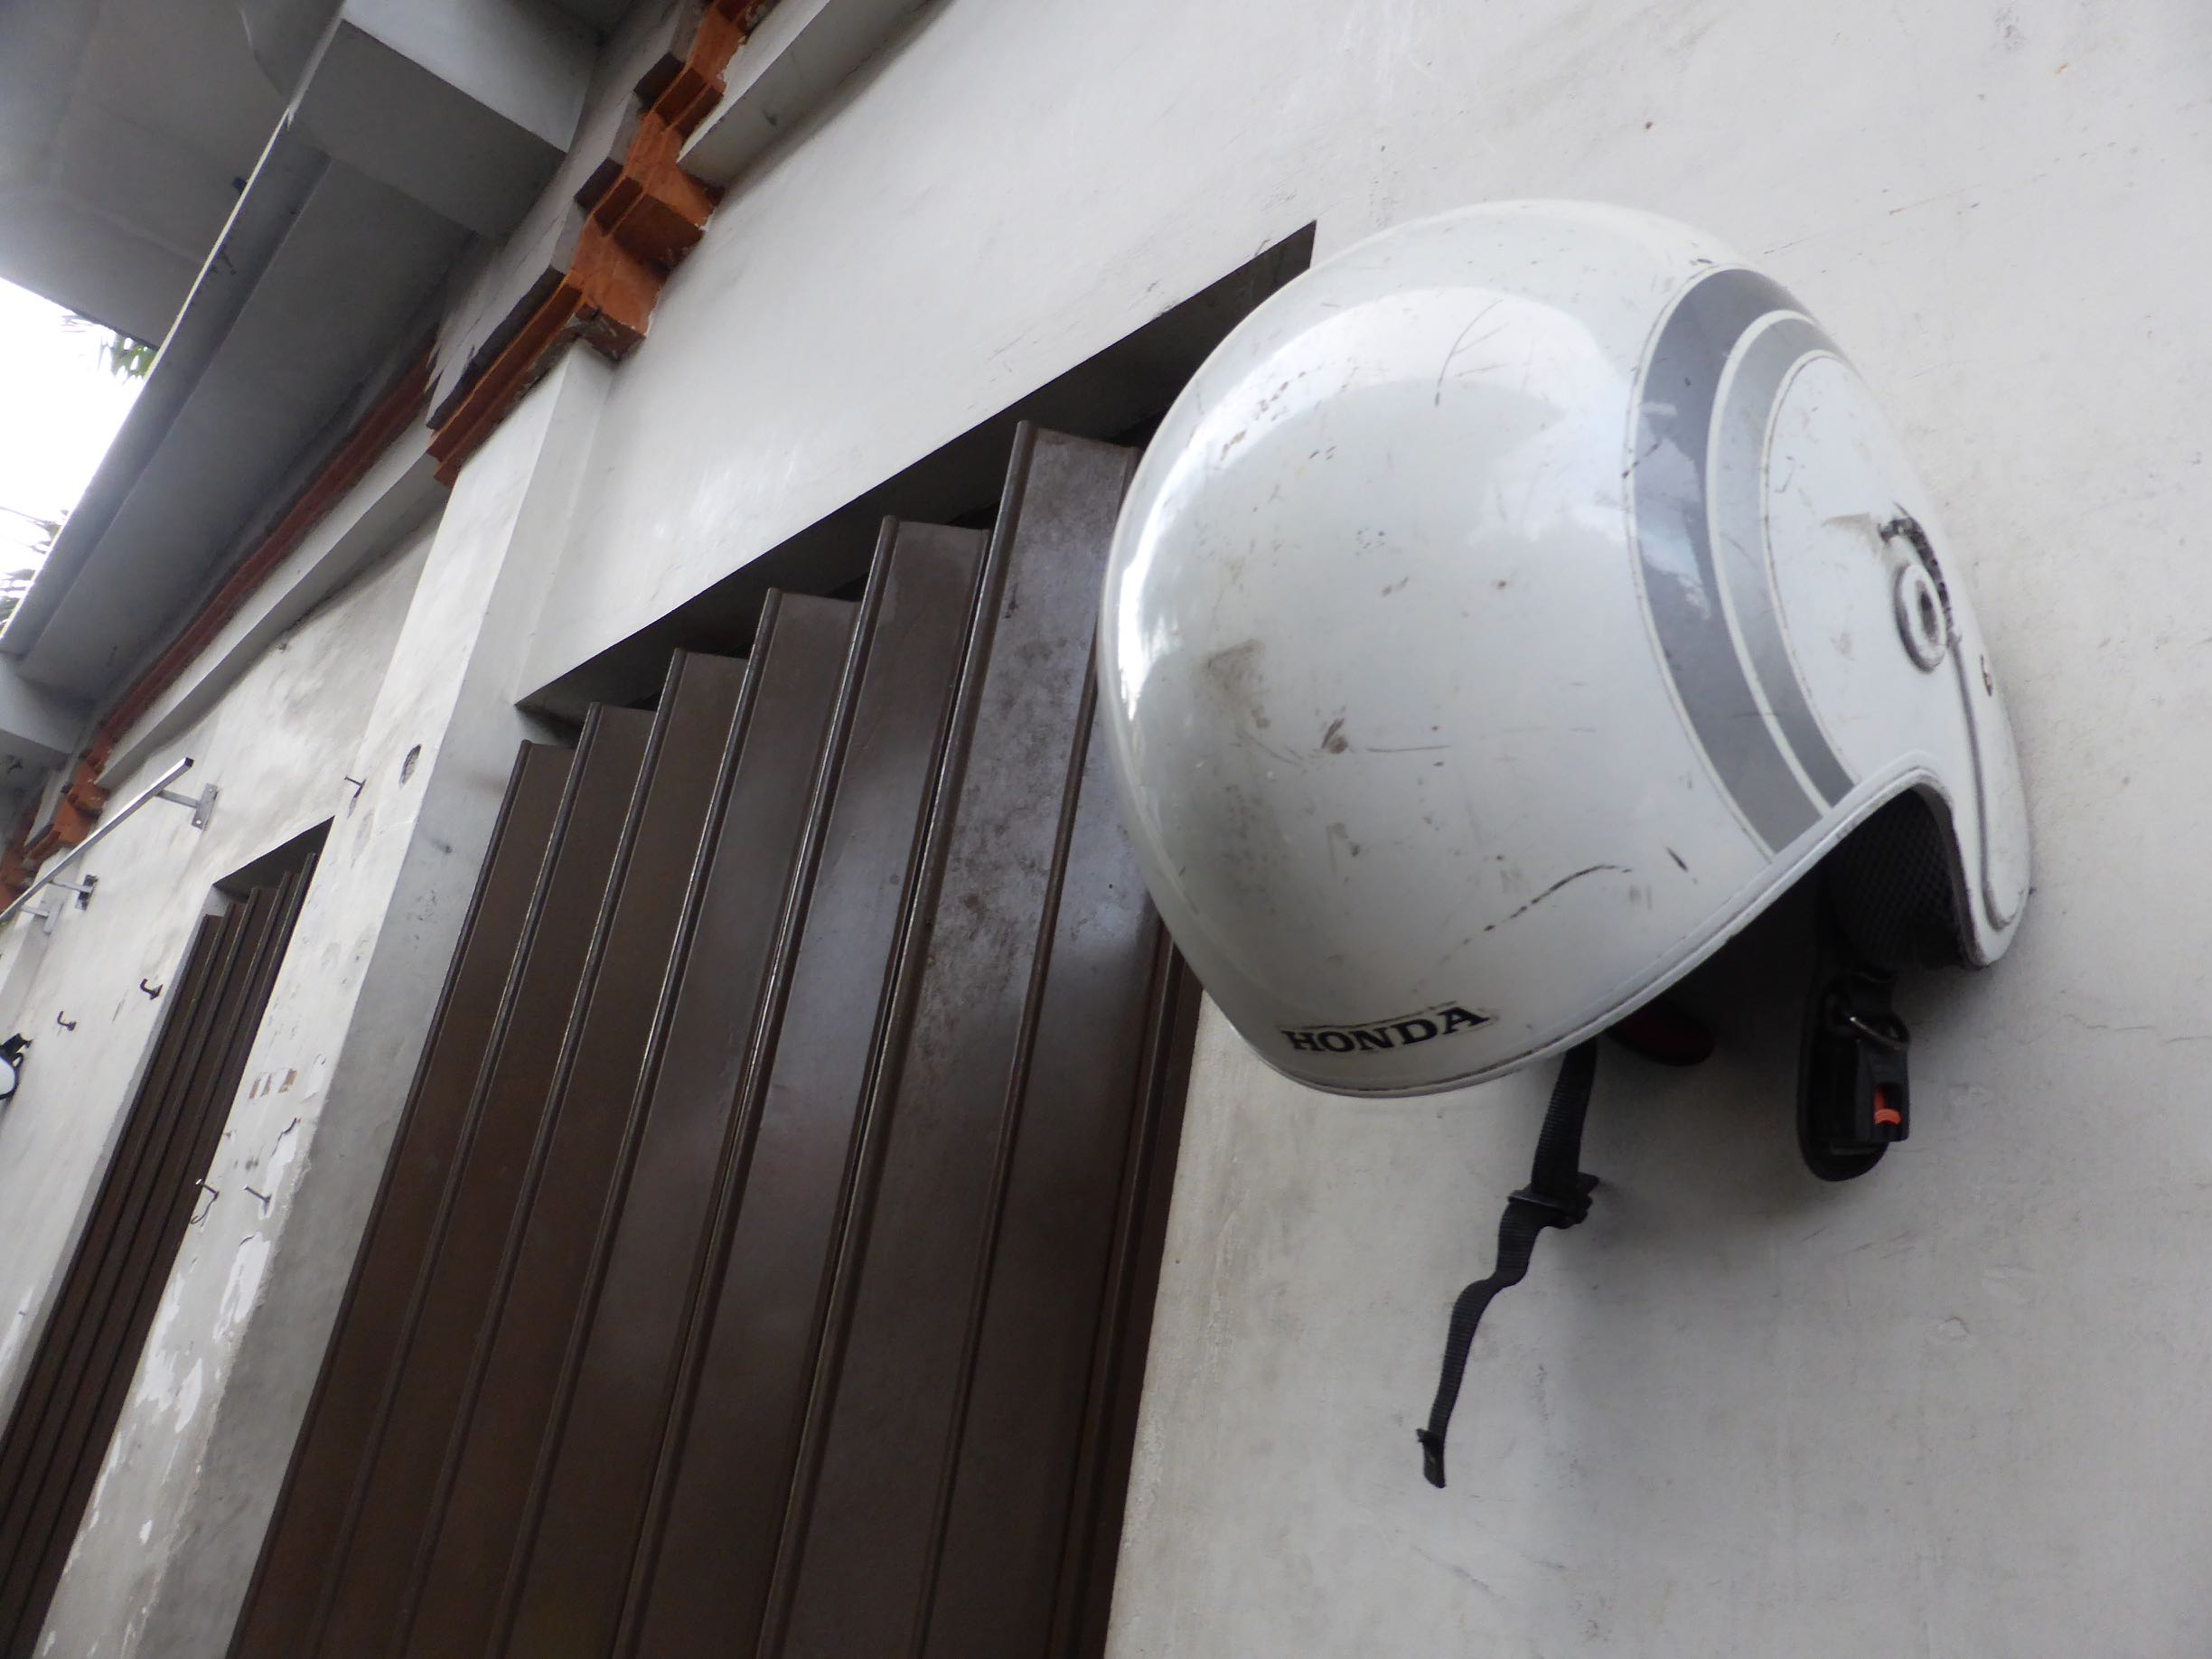 scooter helmet hanging on wall